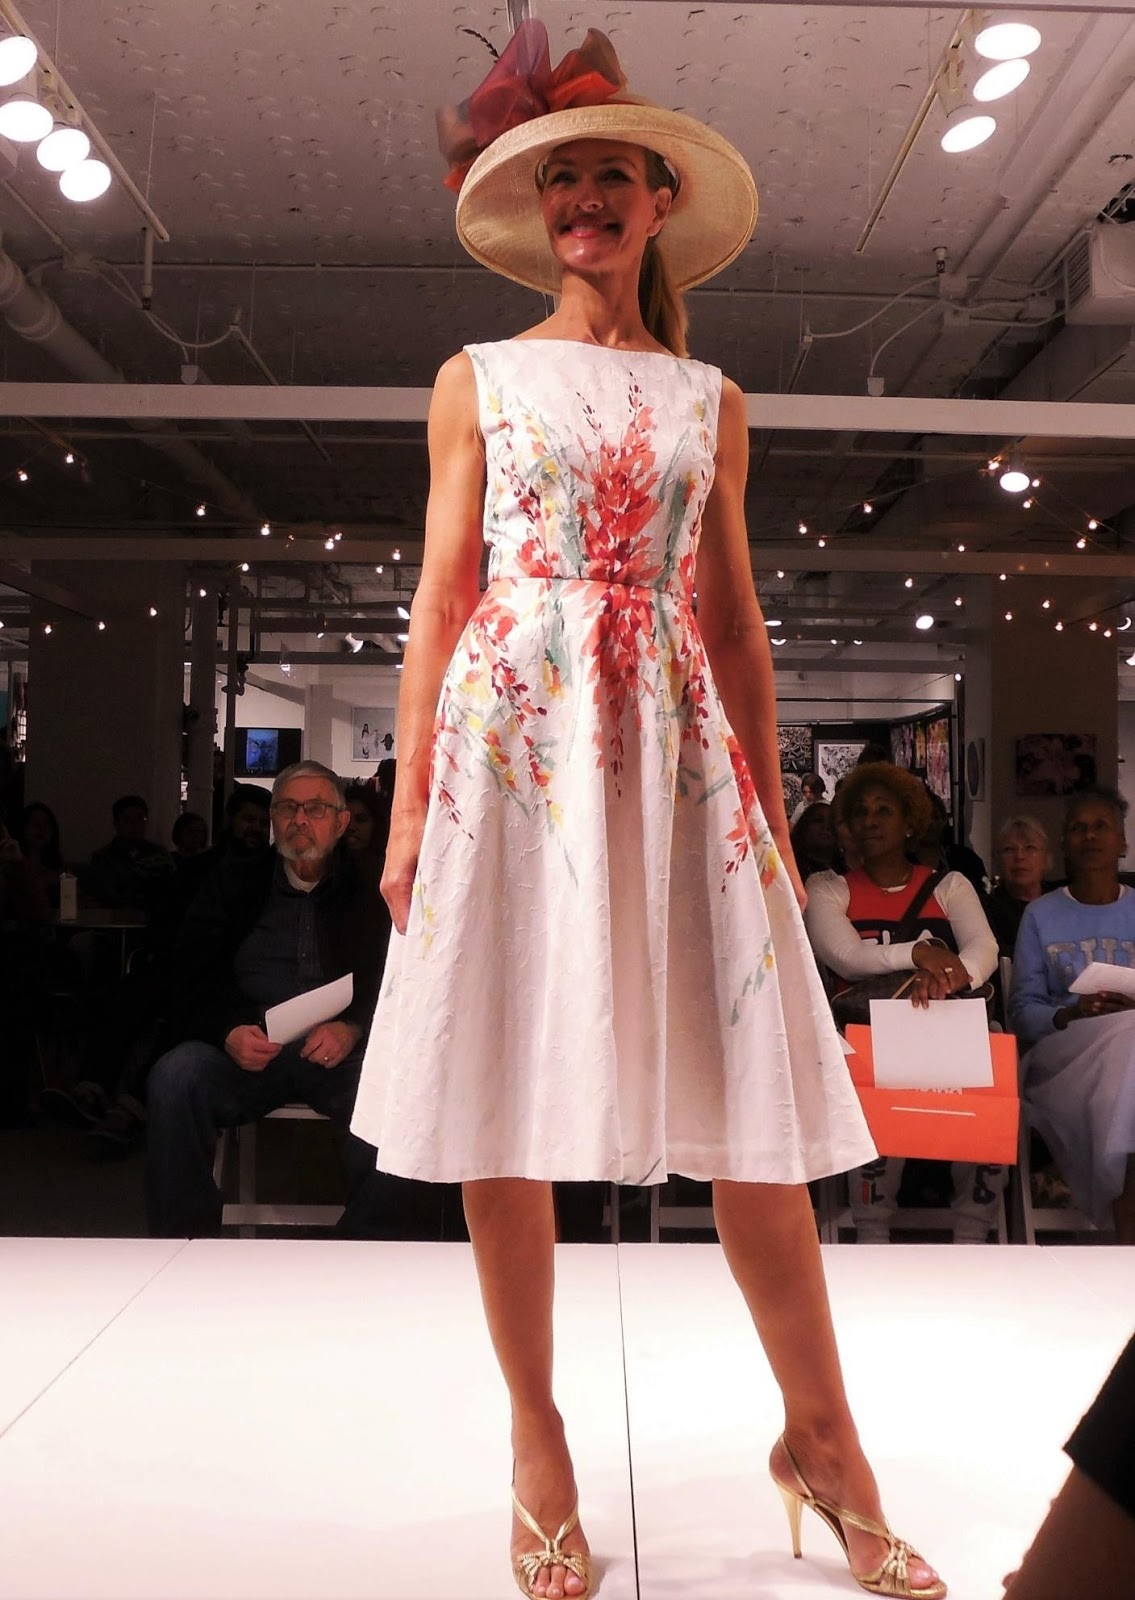 The Glad Dress by Anikka Becker on the runway.